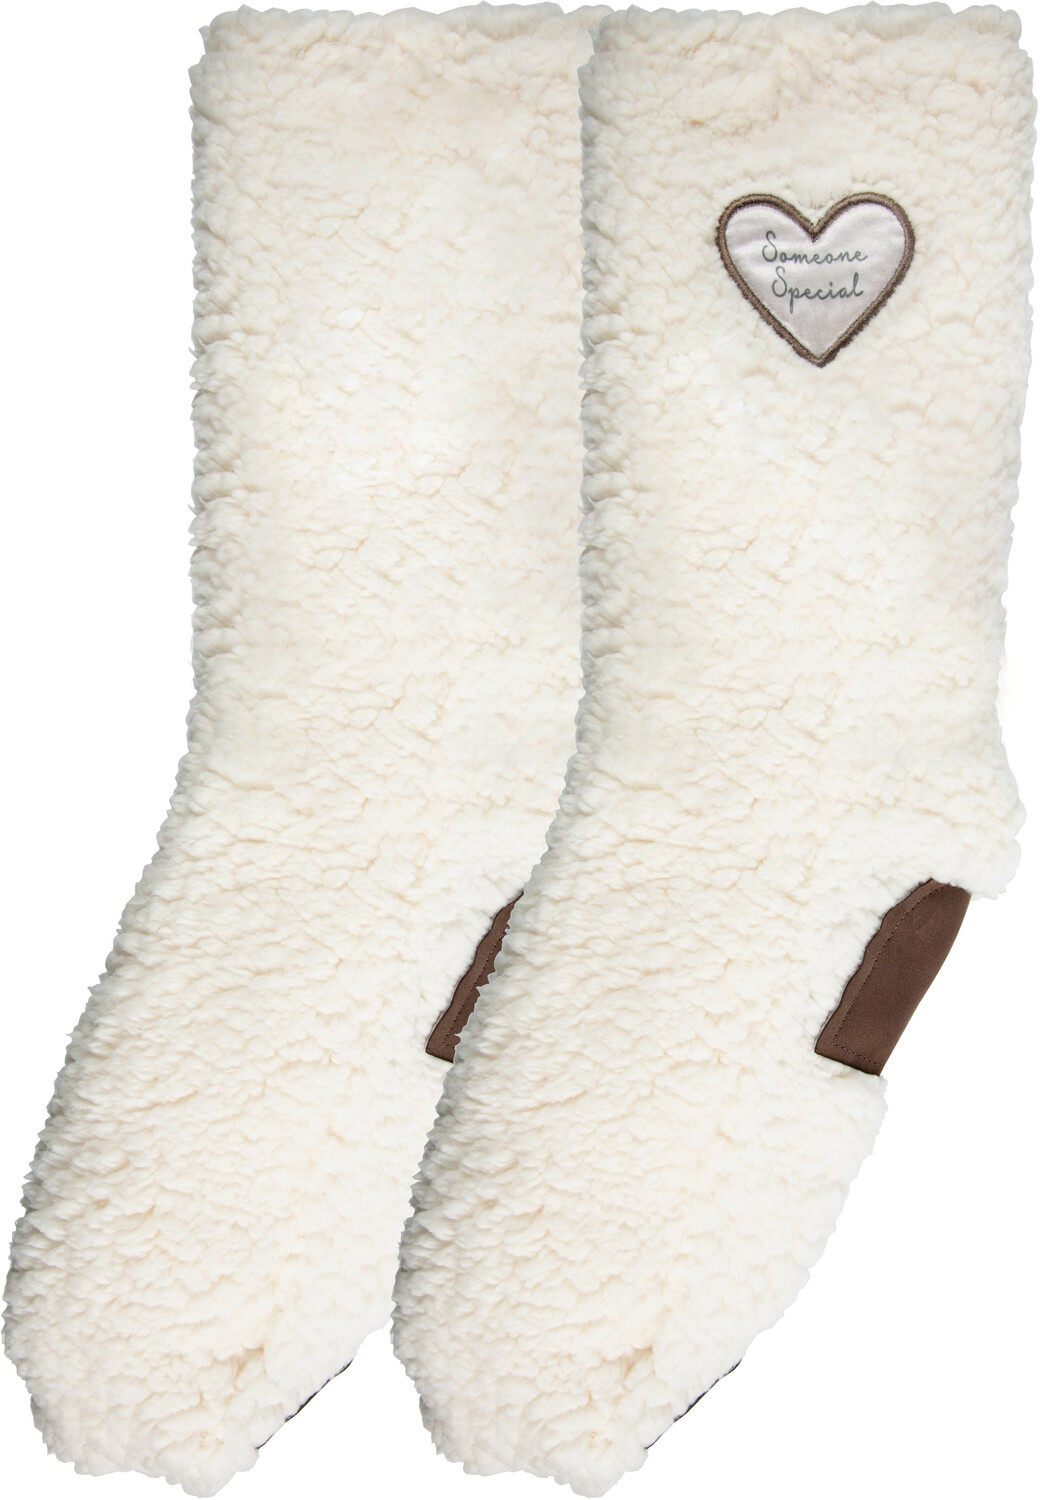 Someone Special by Comfort Collection - Someone Special - One Size Fits Most Sherpa Slipper